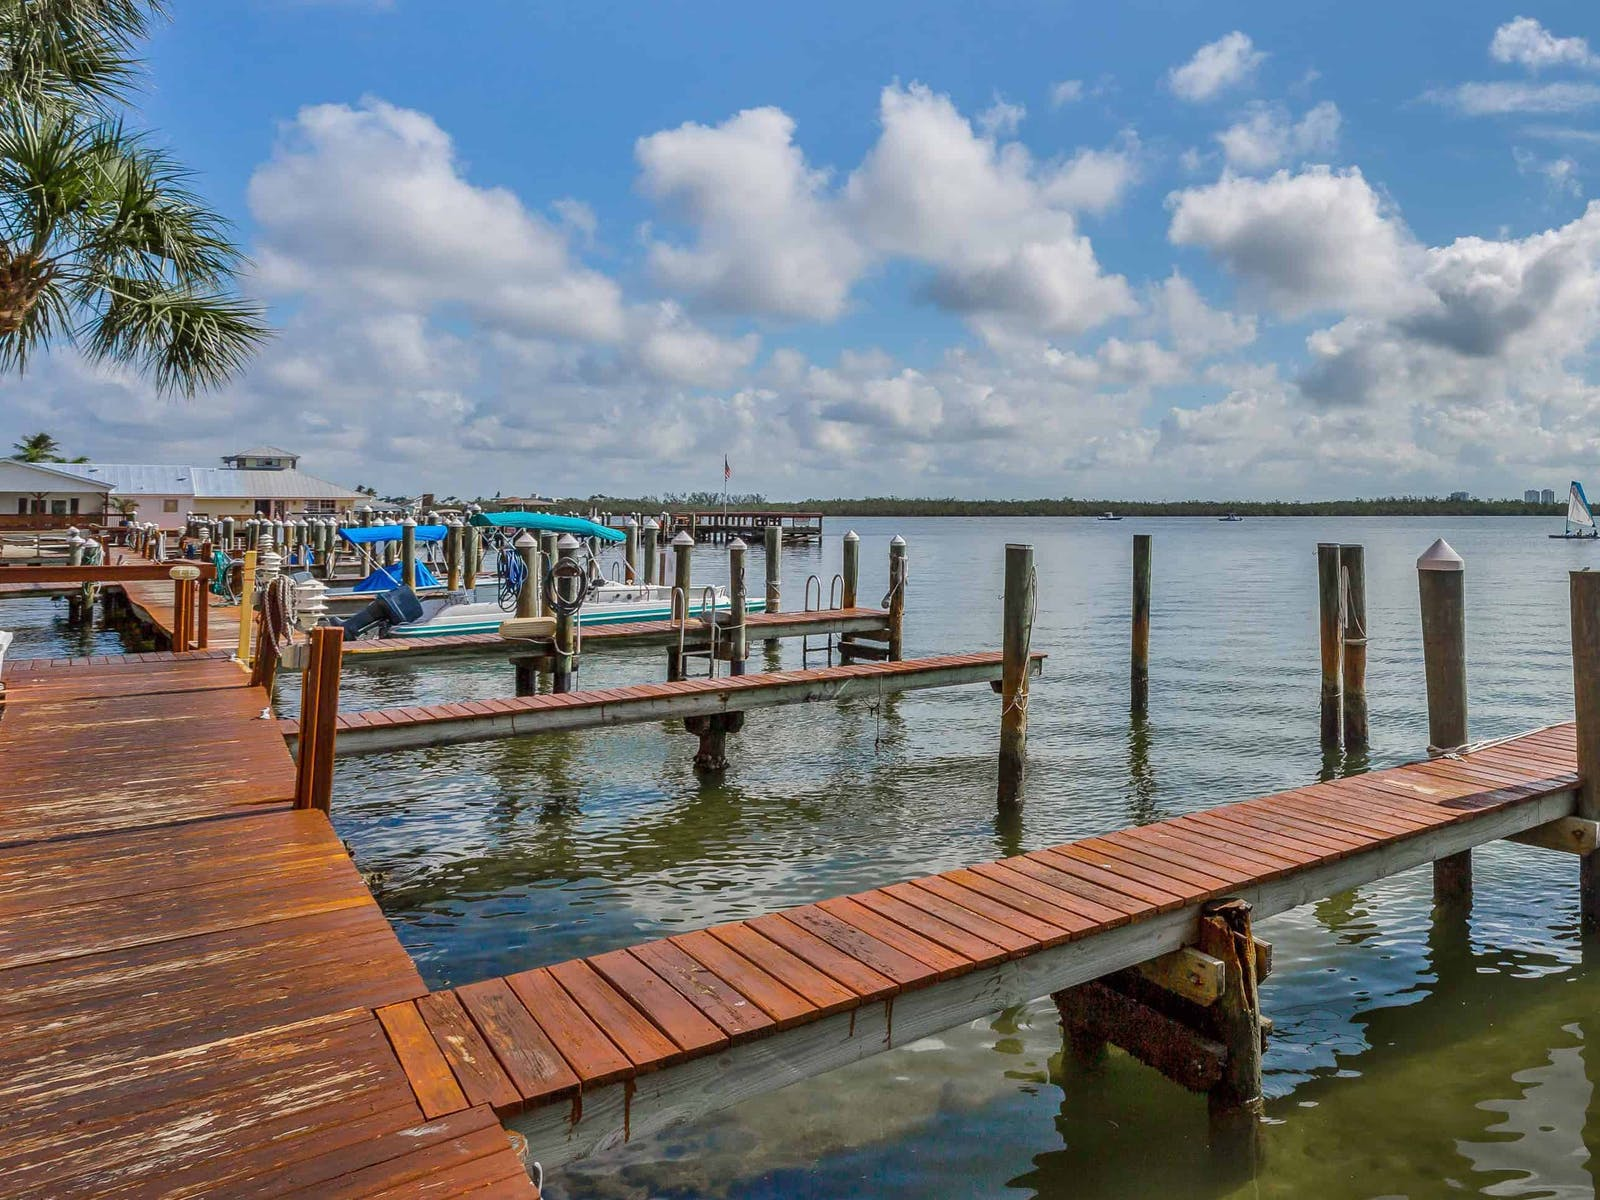 boats at the dock in marco island, florida